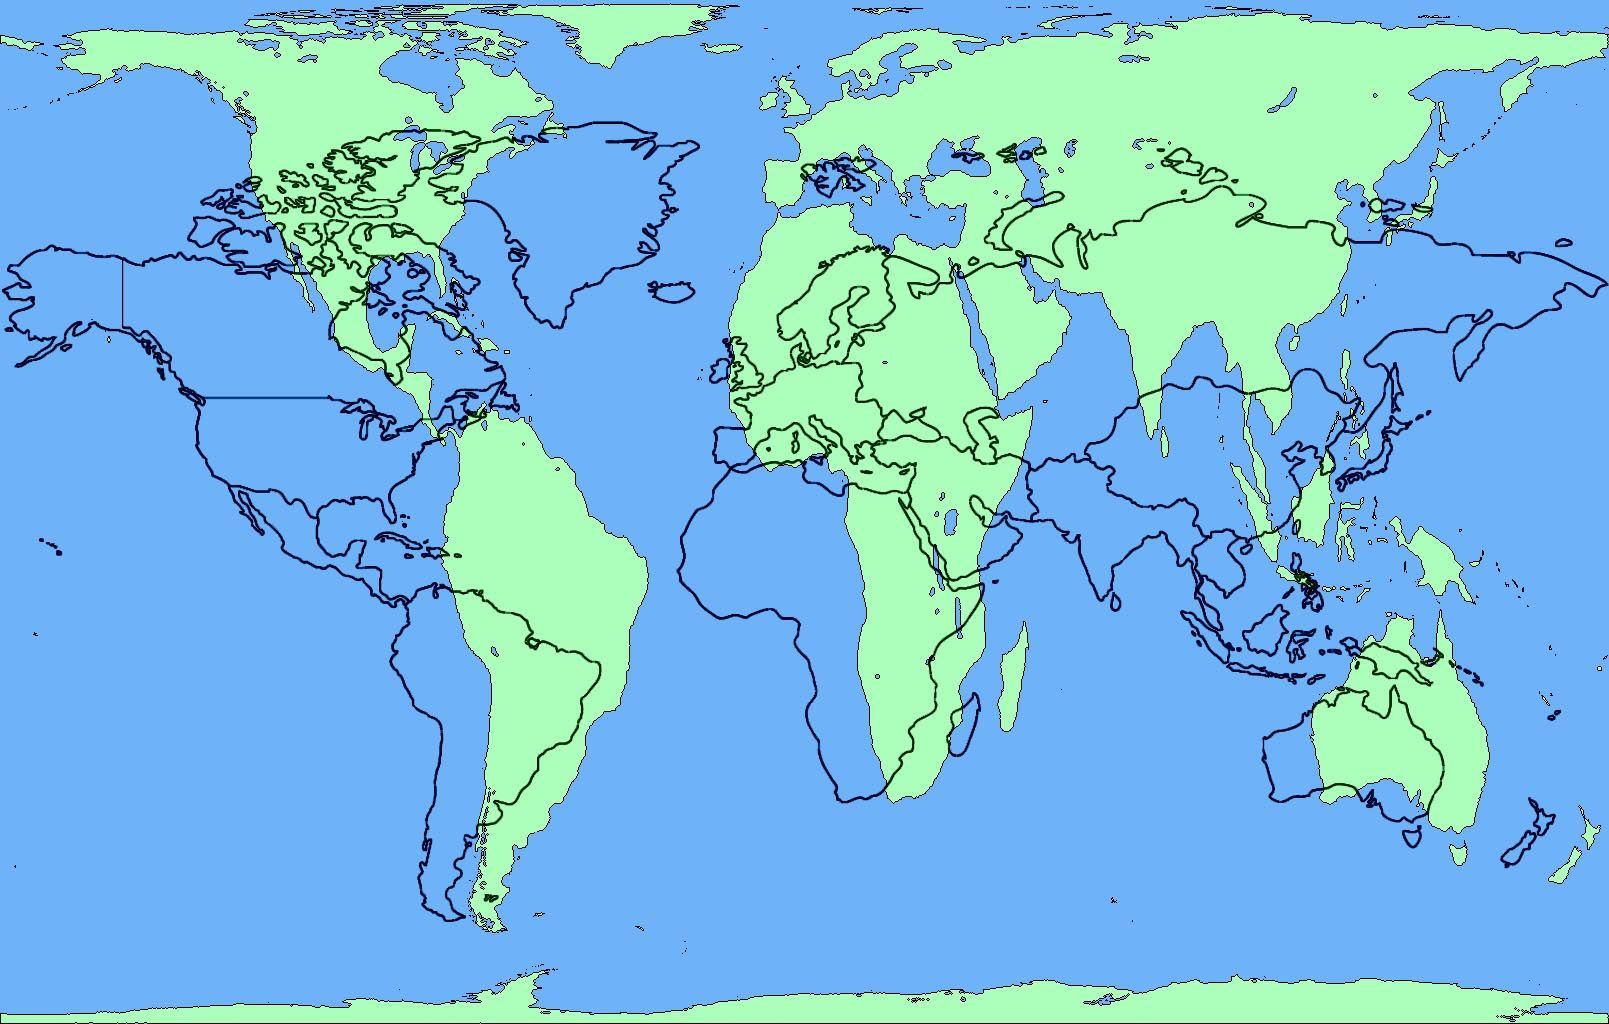 Printable 1 Page World Map Elegant The Peters Projection World Map Is One Of The Most Stimulating And